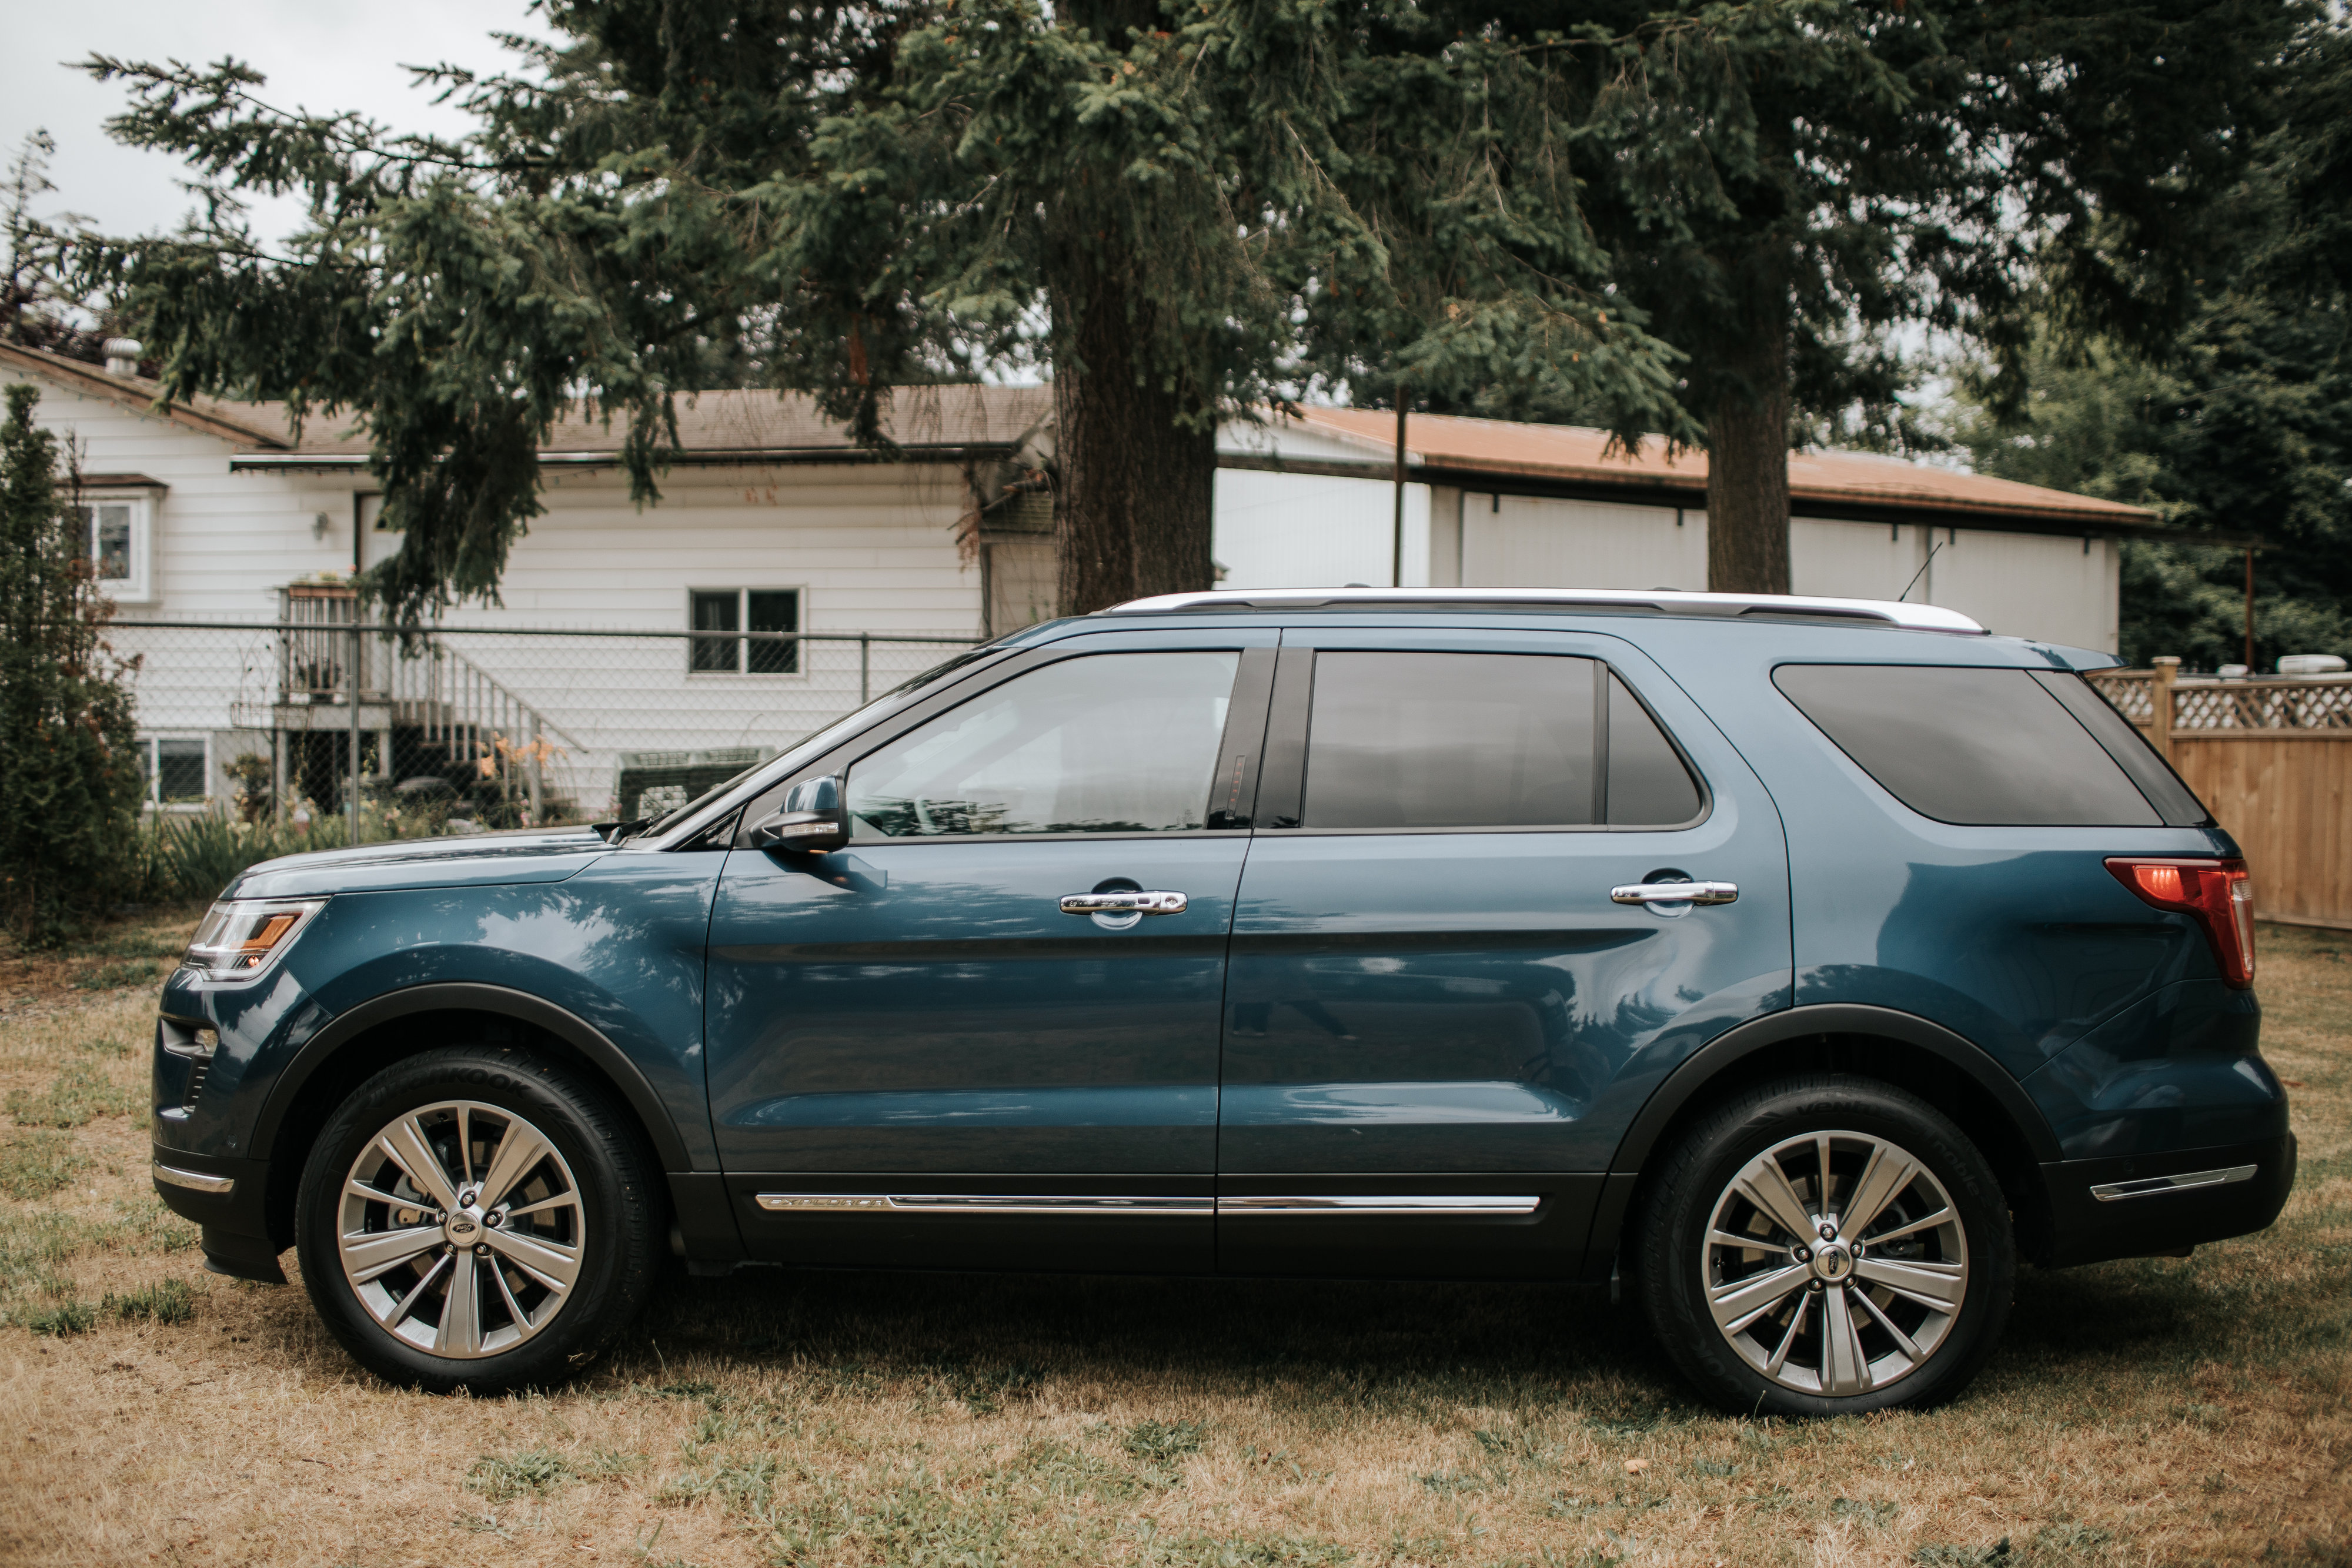 2018 Ford Explorer Review, 2018 Ford Explorer Limited Review, 2018 Ford Explorer, 2018 Ford, 2018 Explorer